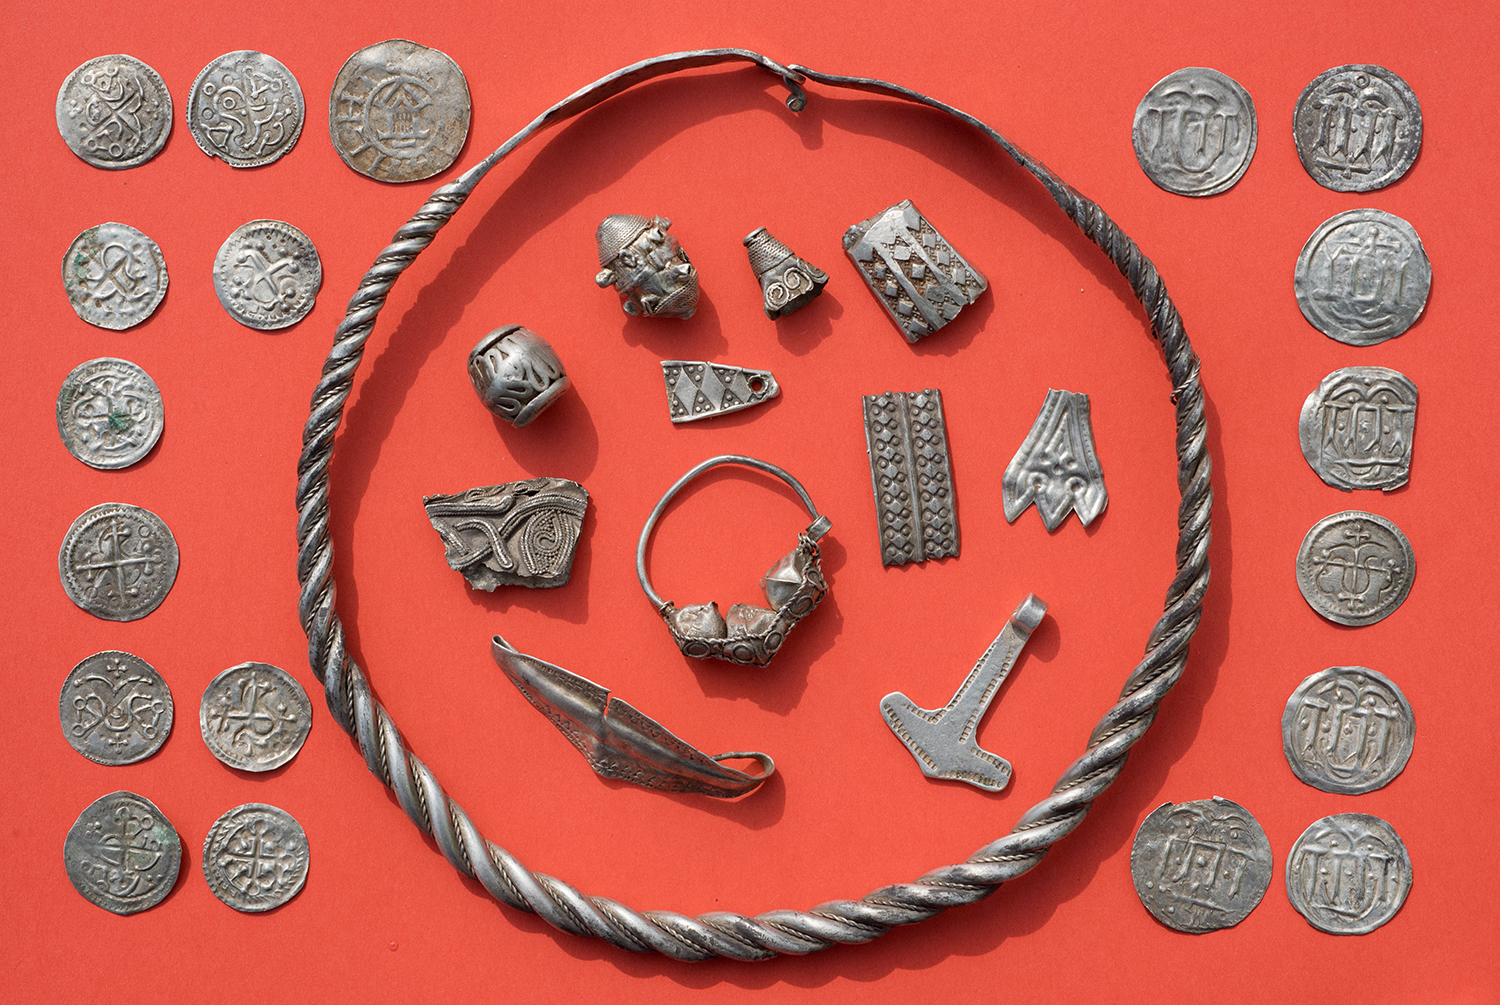 Parts of the silver treasures found in northern Germany which may have belonged to the legendary Danish king Harald Bluetooth who brought Christianity to Denmark